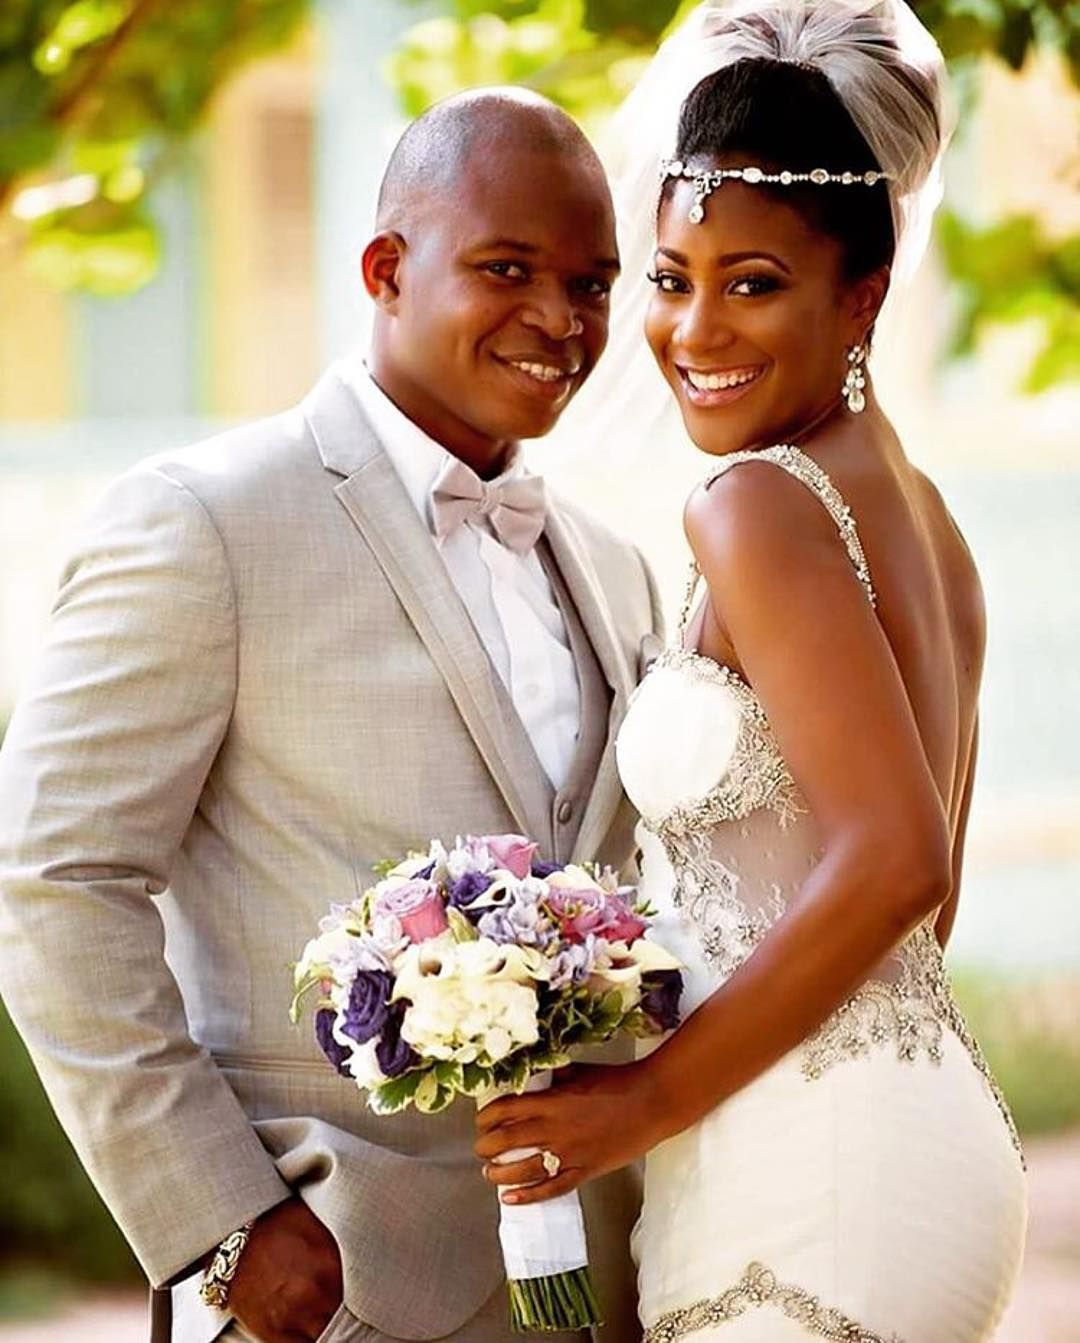 Pin by kayvern collins on wedding pinterest african american